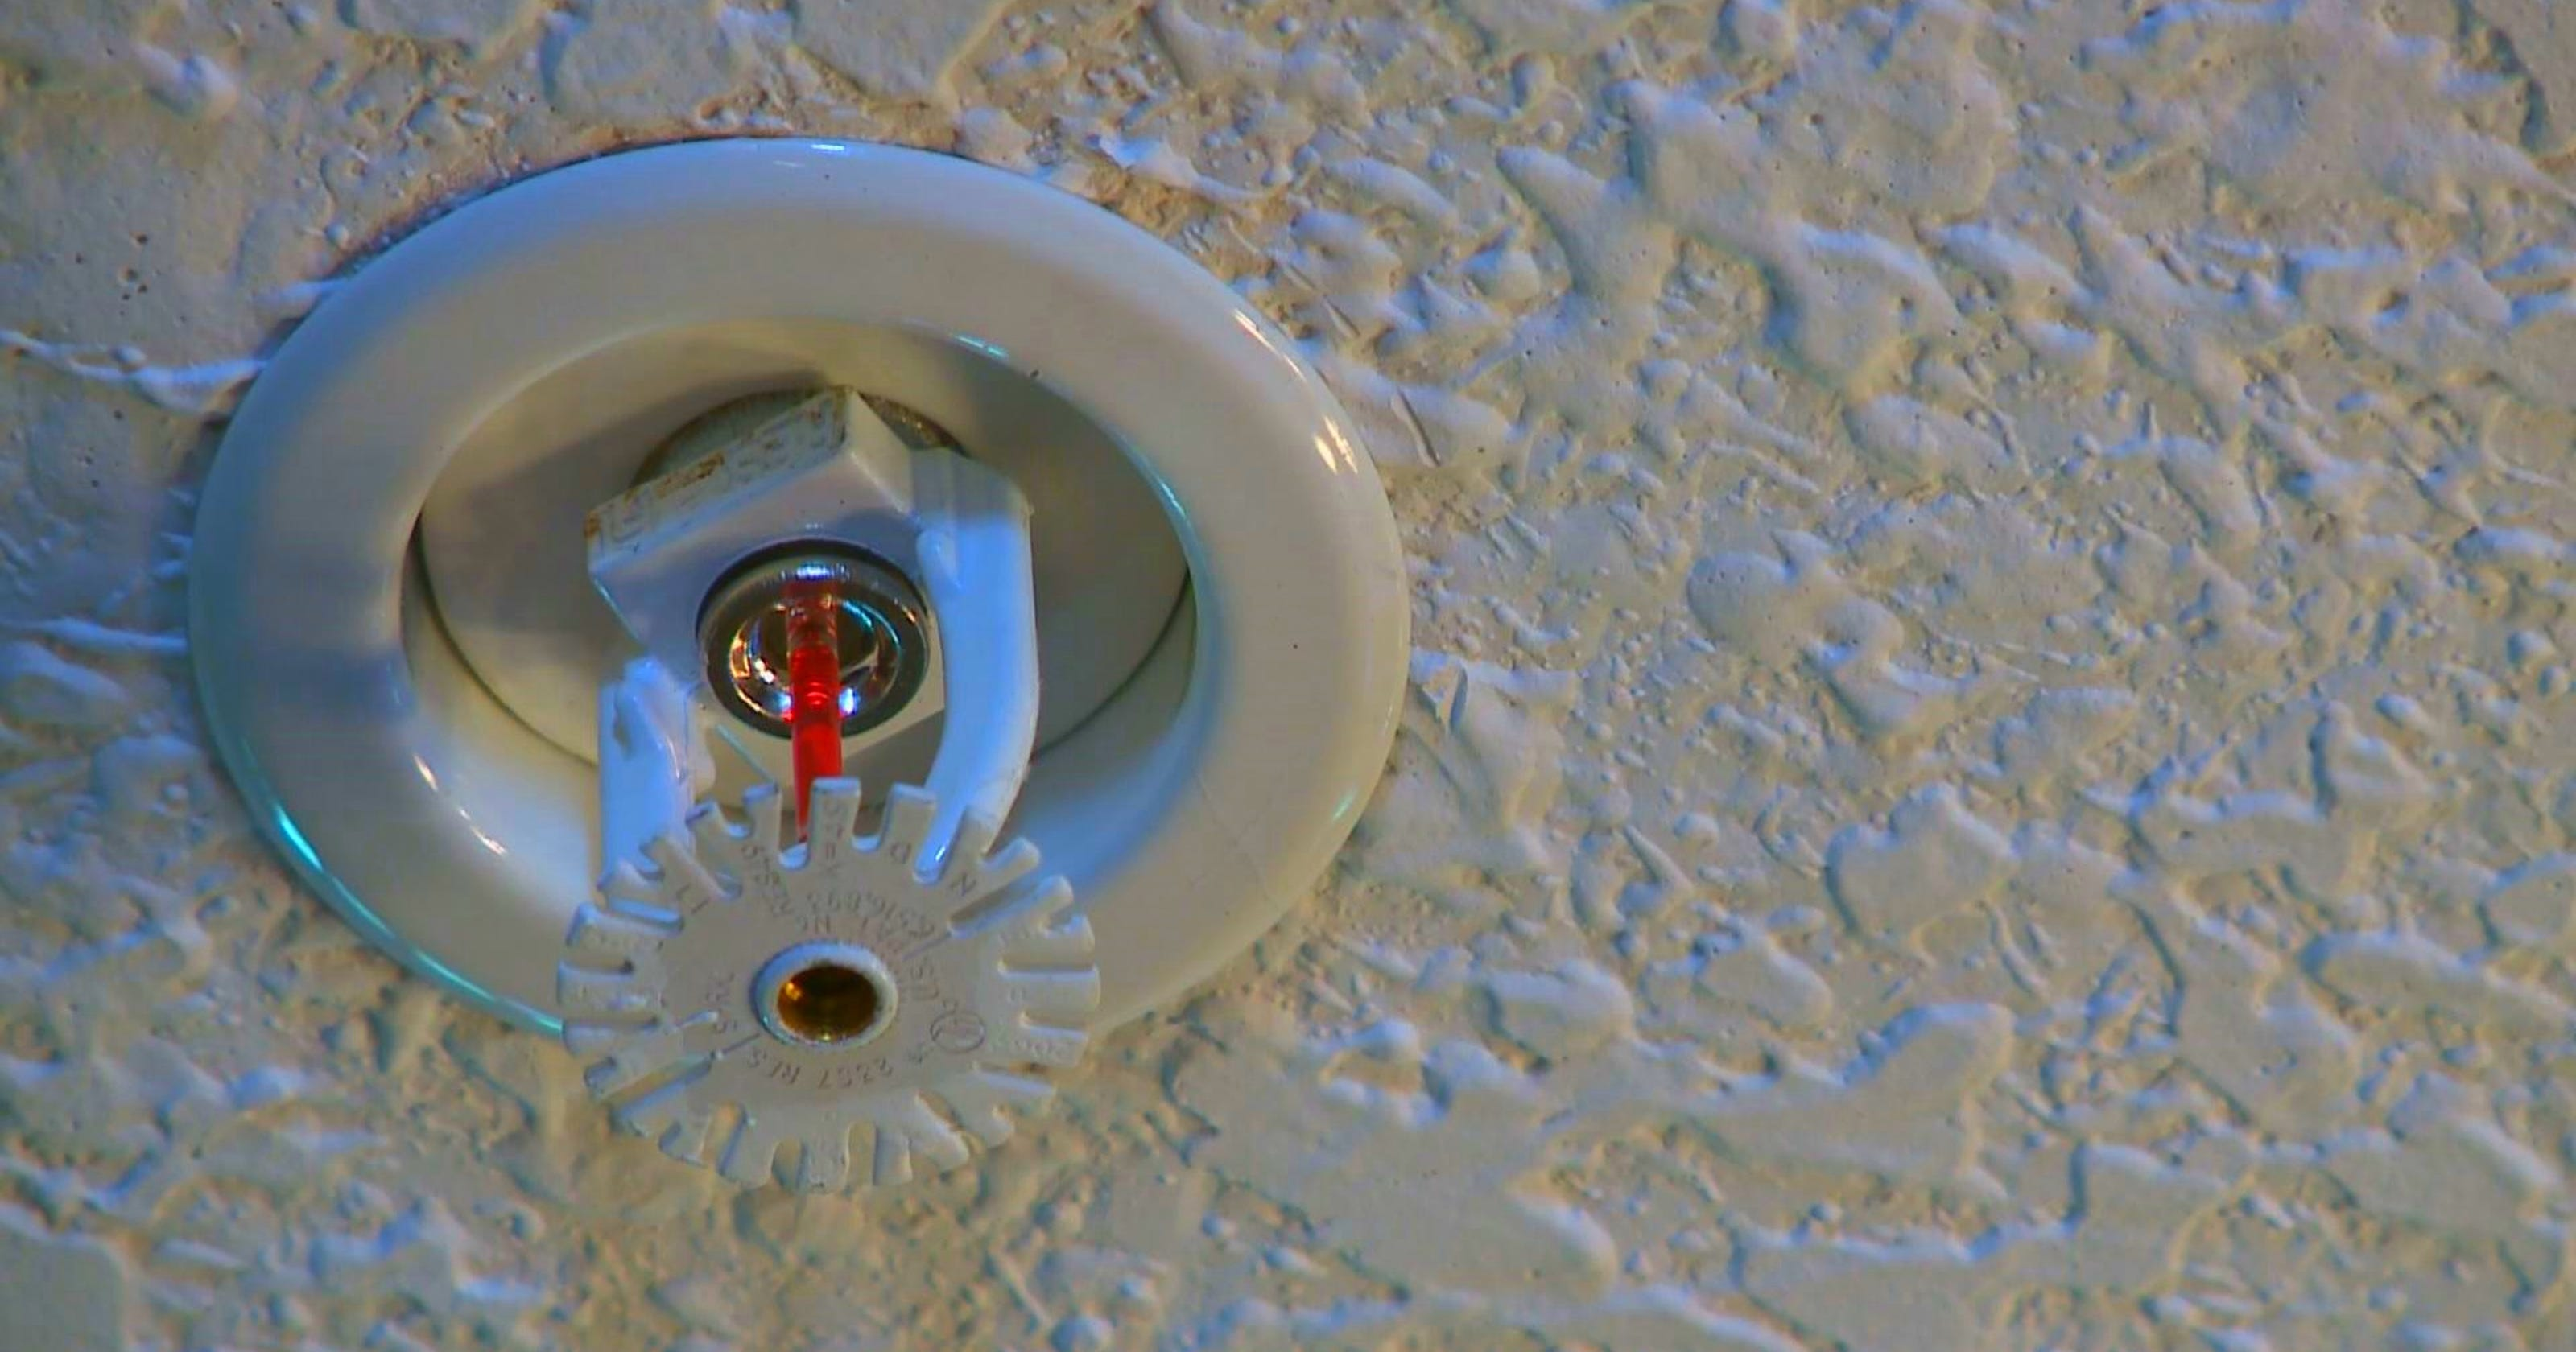 Why we need fire sprinklers in schools: Opinion